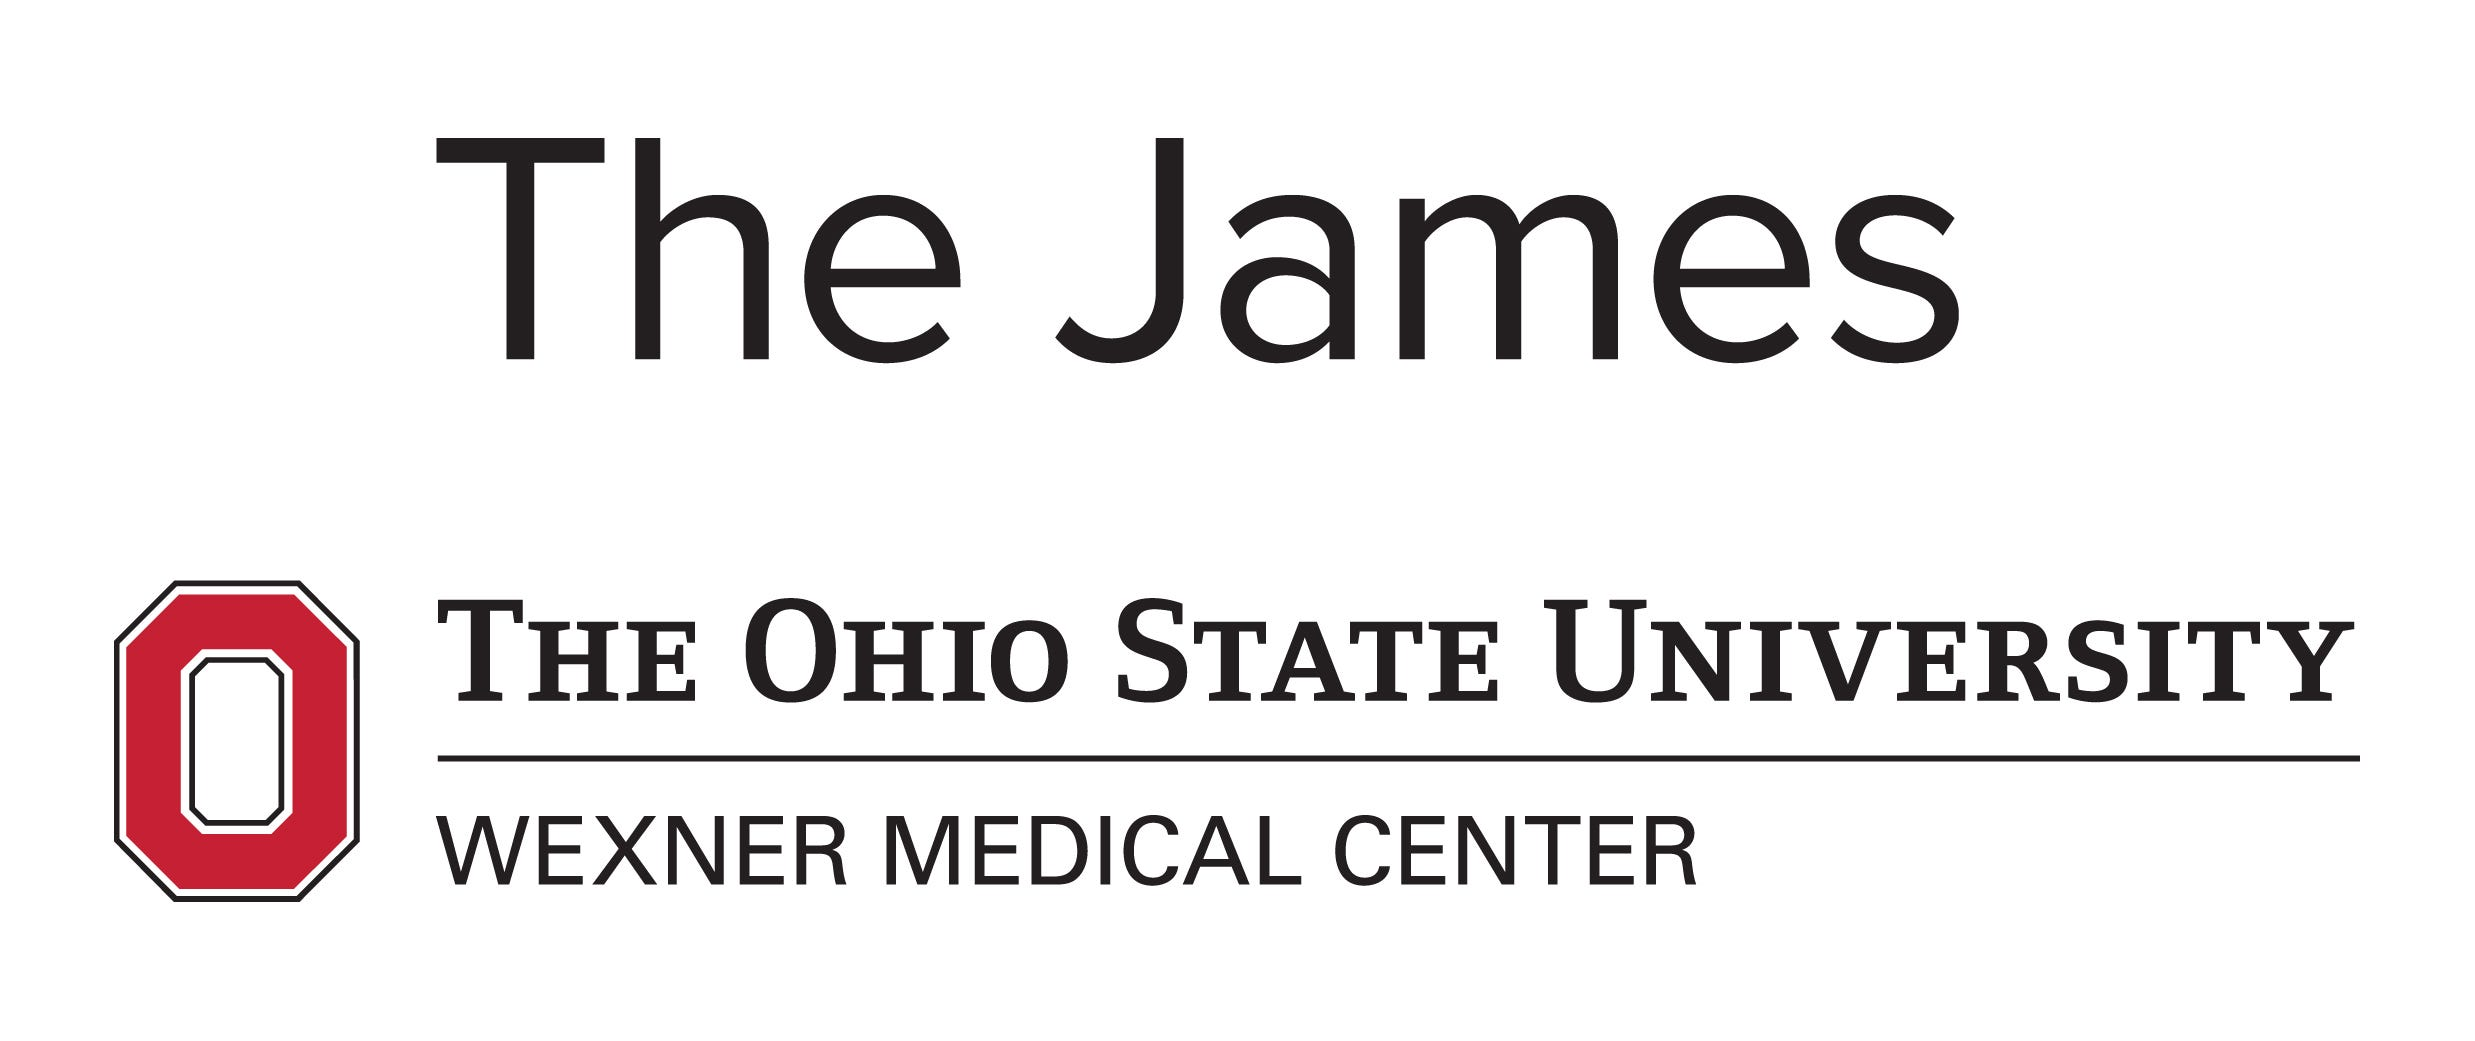 The James Logo